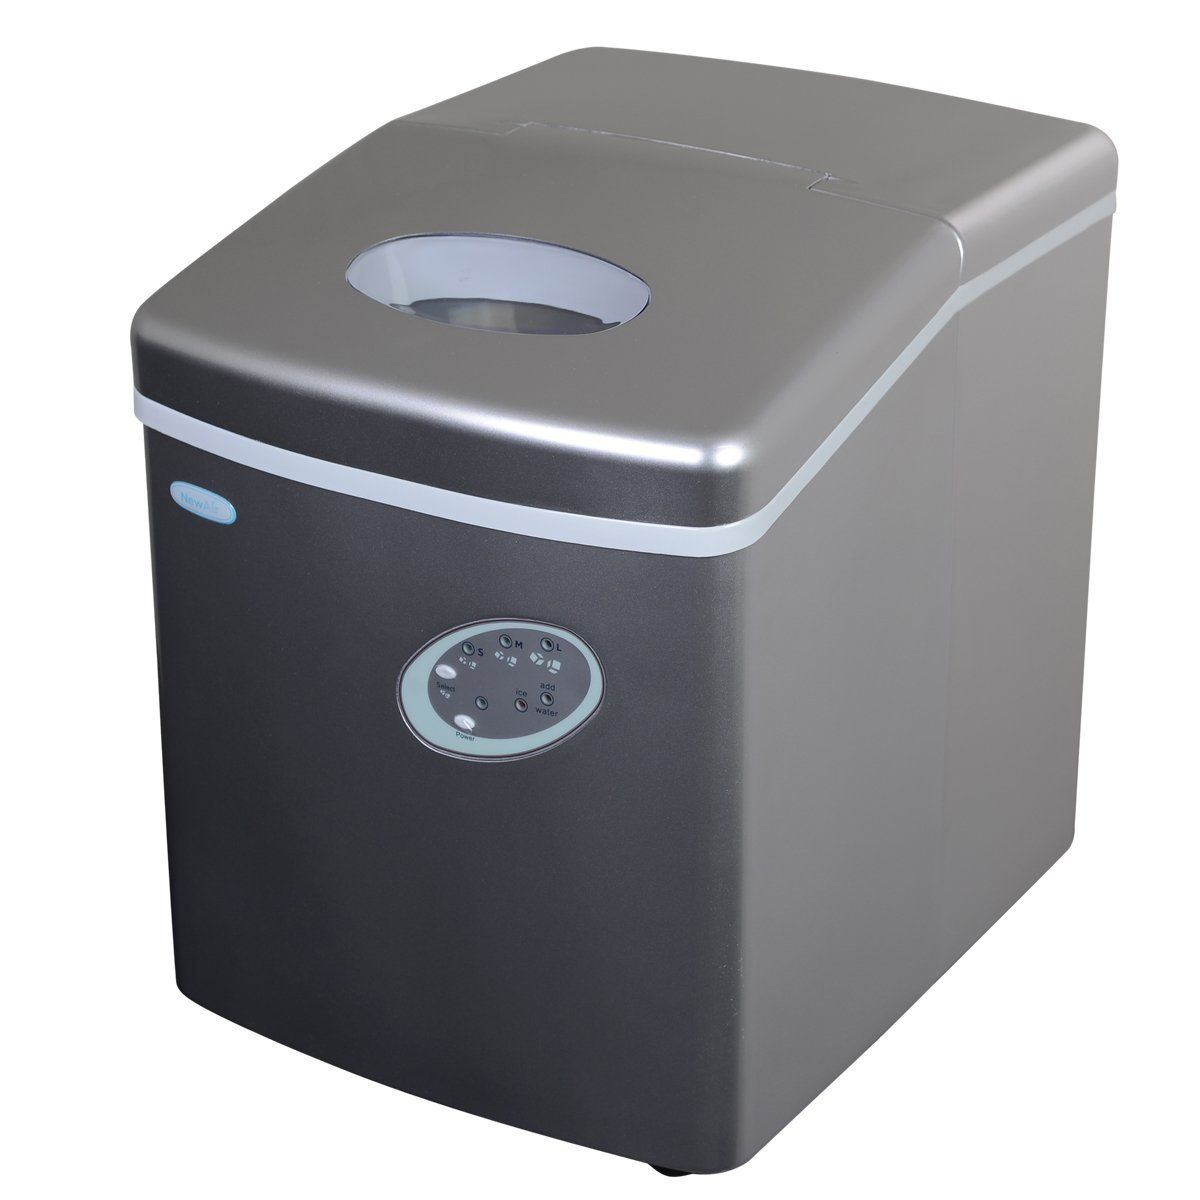 Newair Ai 100s 28 Pound Portable Ice Maker Silver This Is An